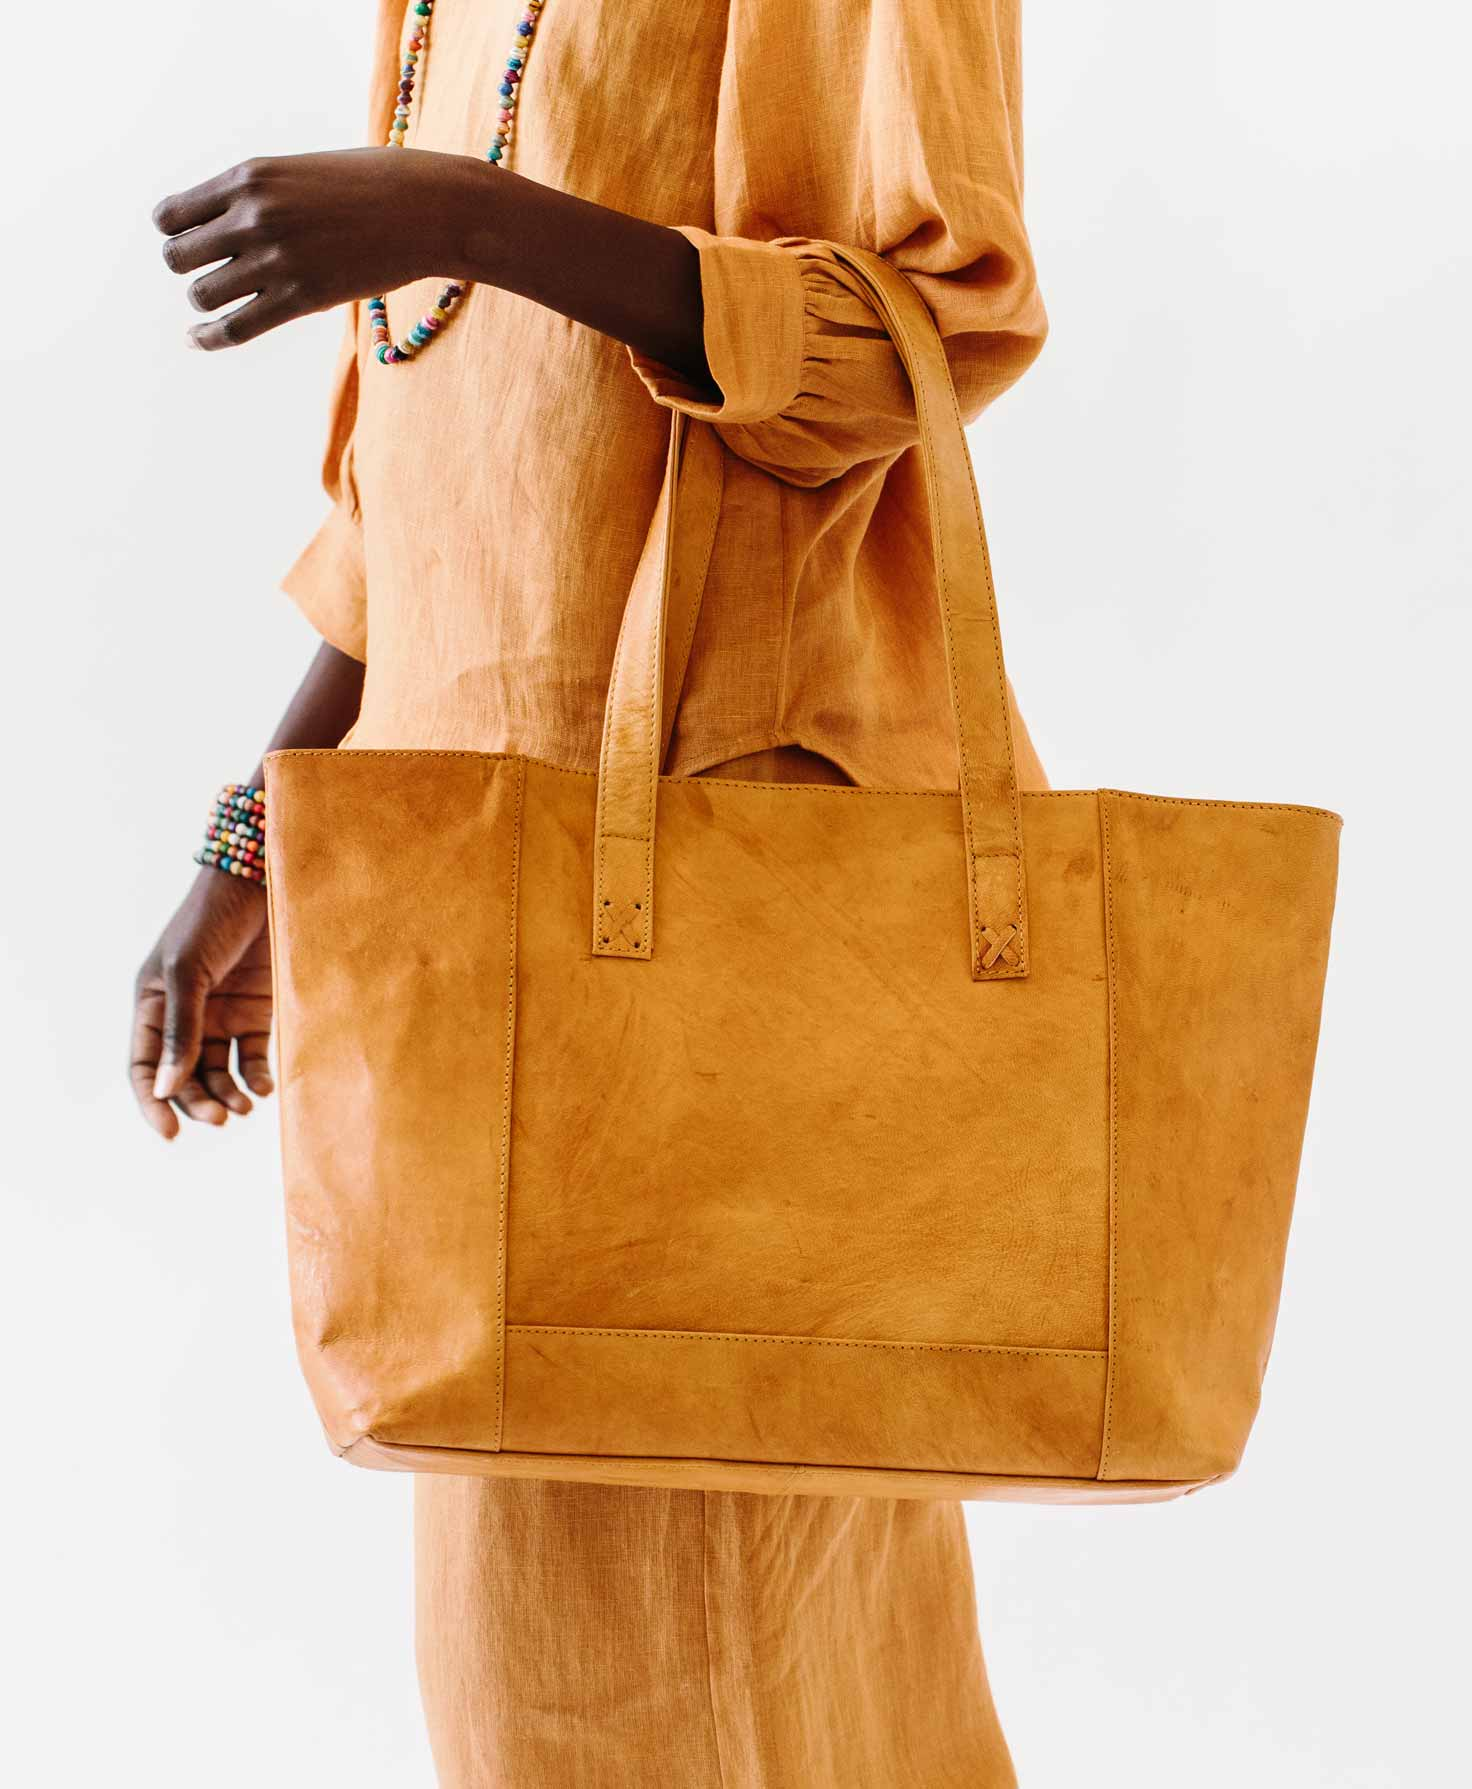 A model wears the Modern Leather Tote in the crook of her arm. The substantial looking bag has the light fawn color common to newer bags.